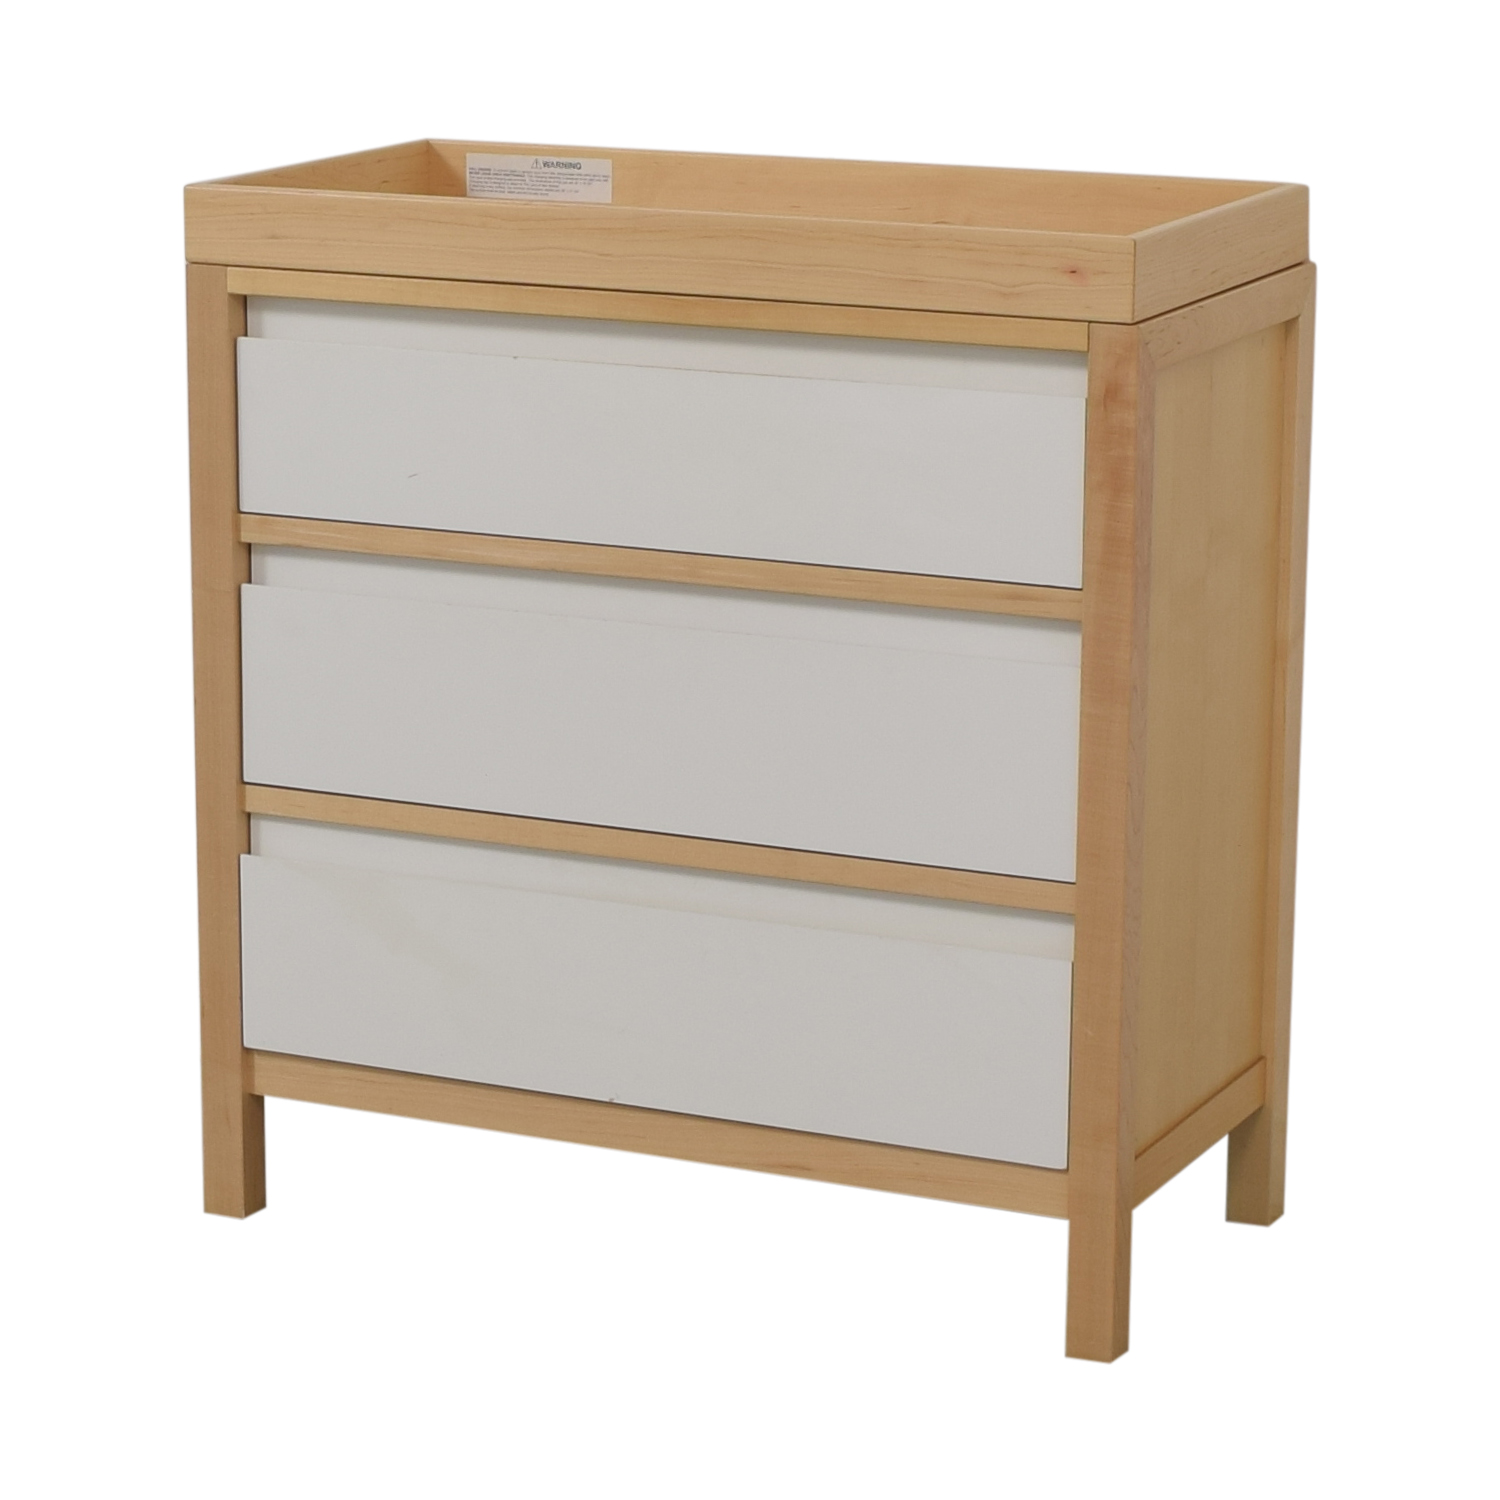 81% OFF   Land Of Nod Land Of Nod Dresser With Changing Table Top / Storage